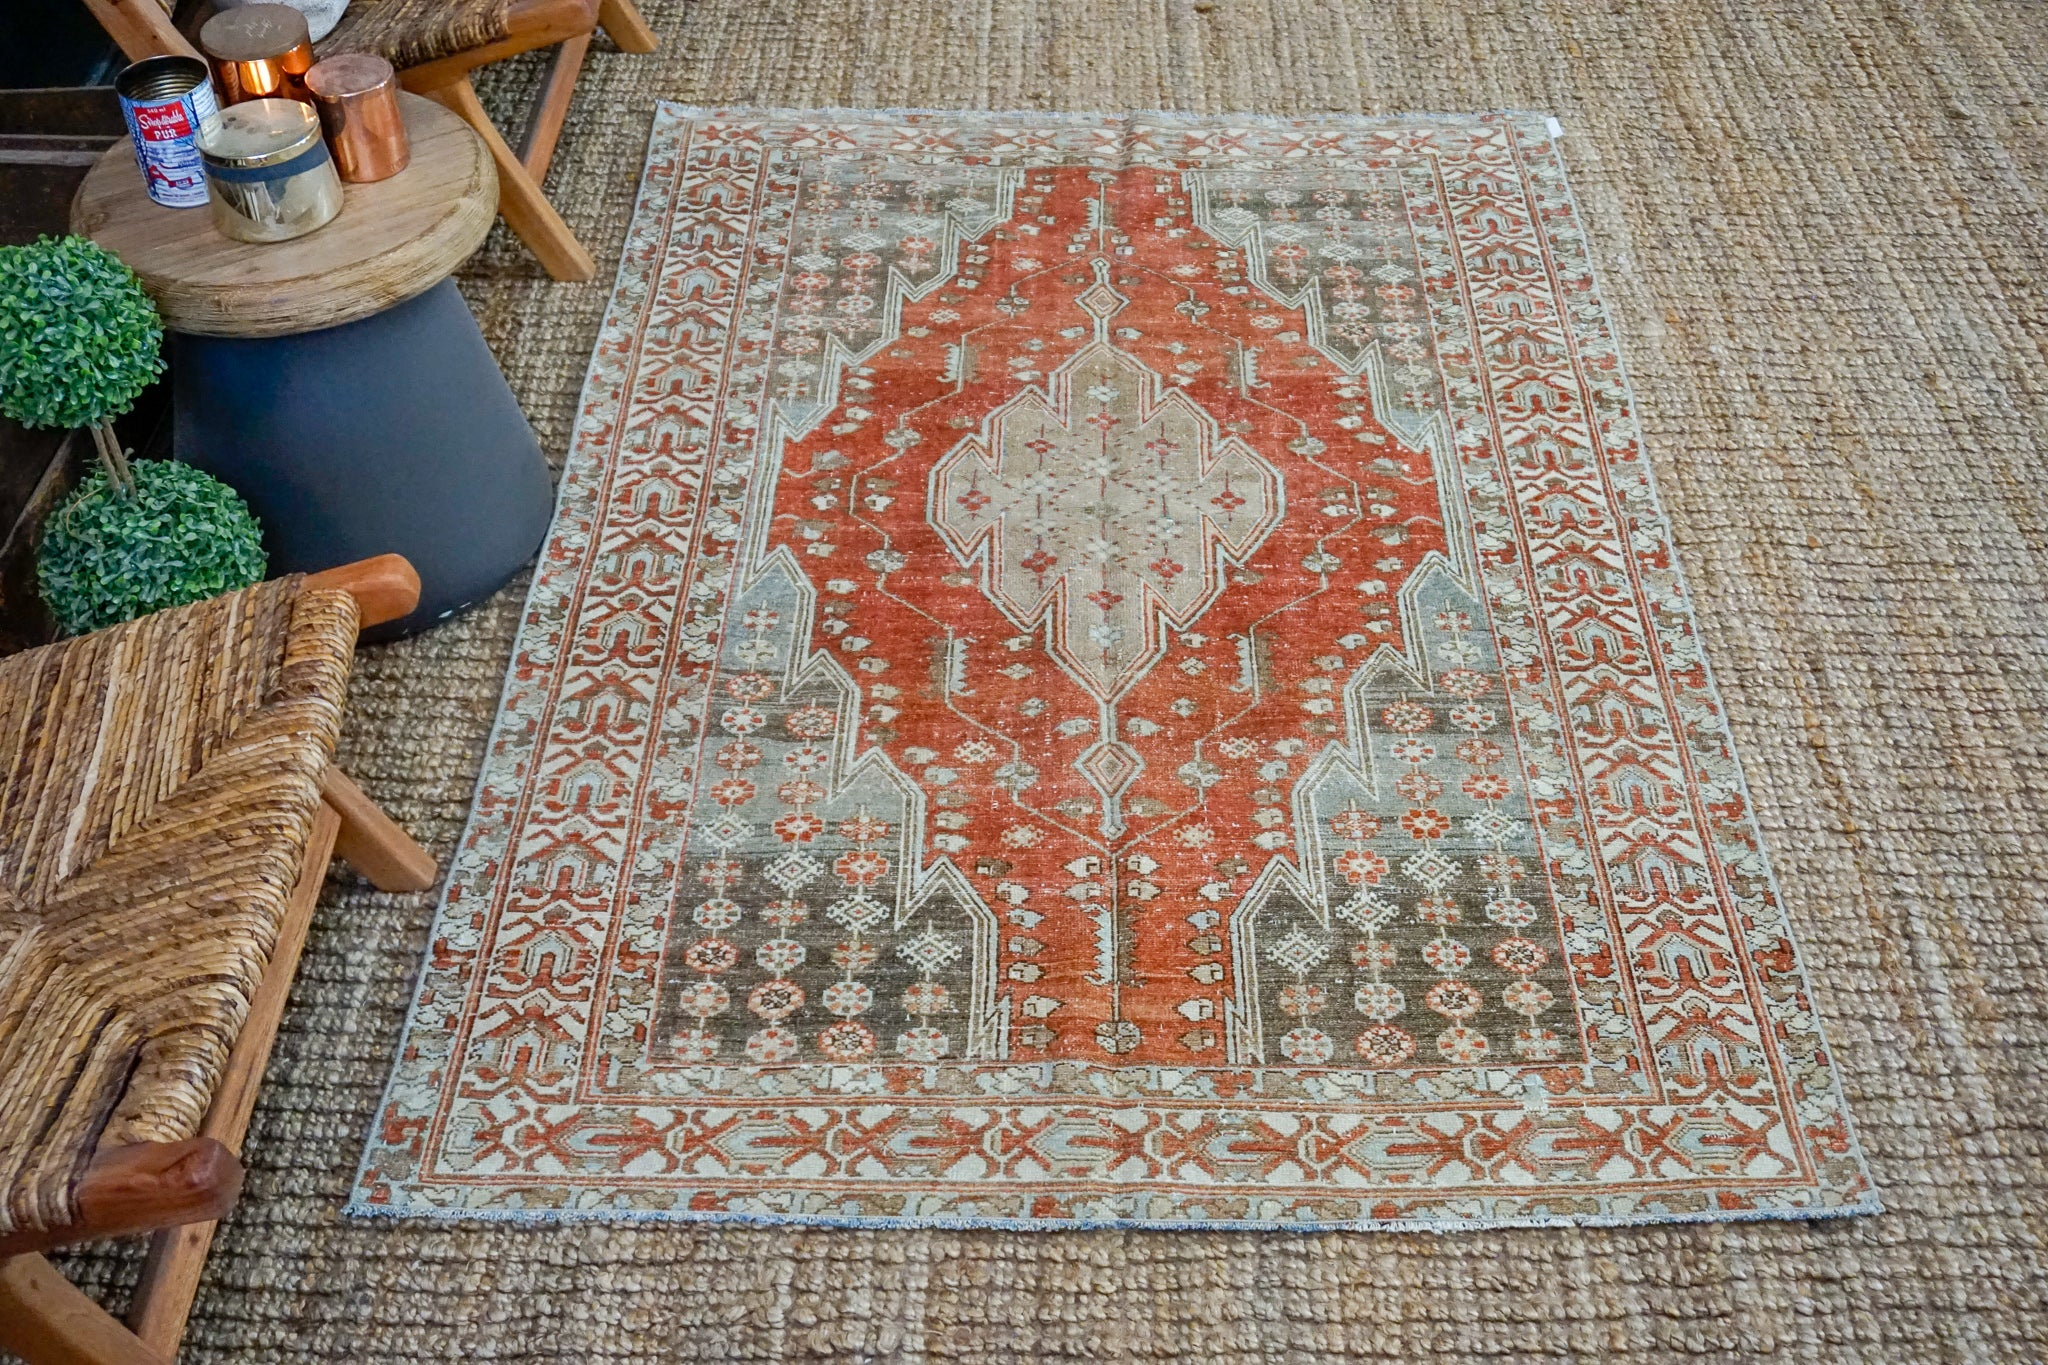 4'1 x 6'1 Classic Vintage Rug Muted Rust, Beige, Cream + Gray Carpet